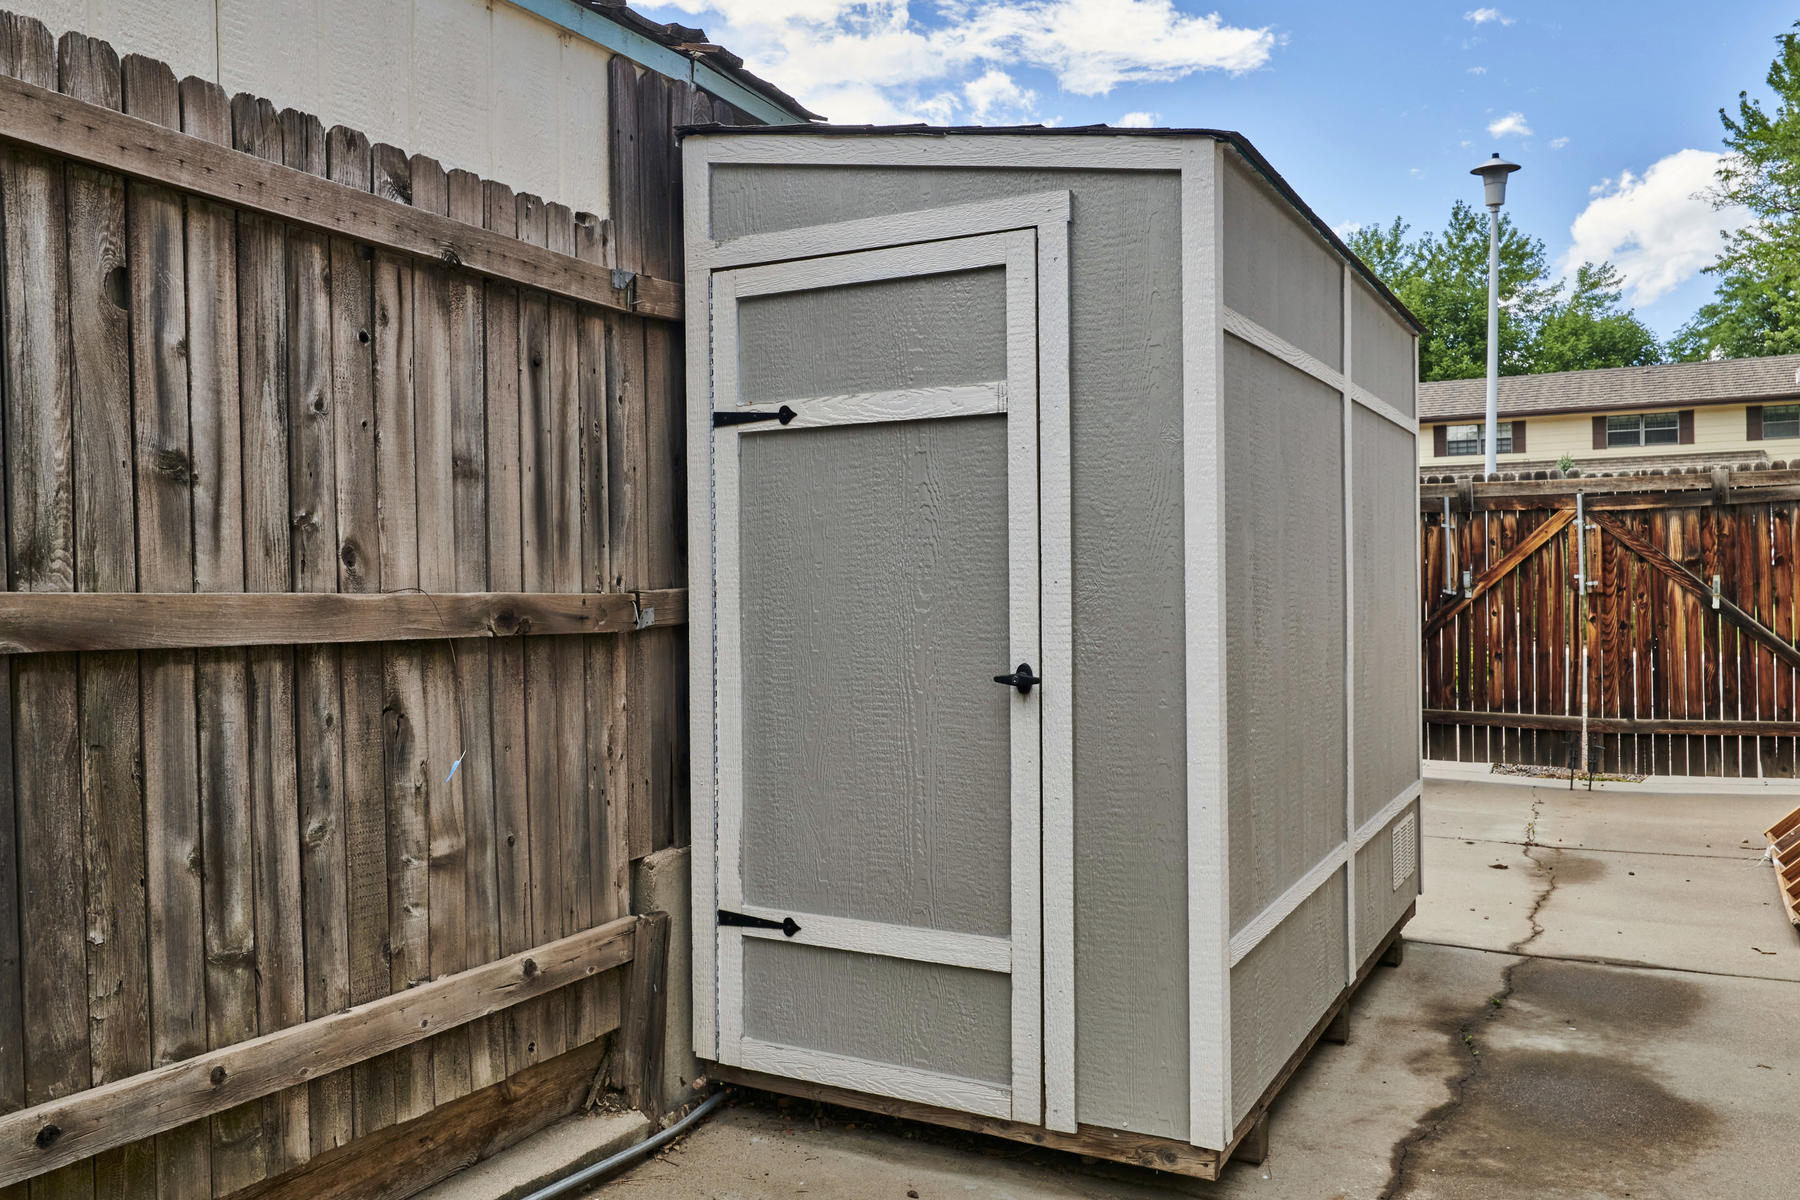 Storage Shed for Garden Tools or Toys